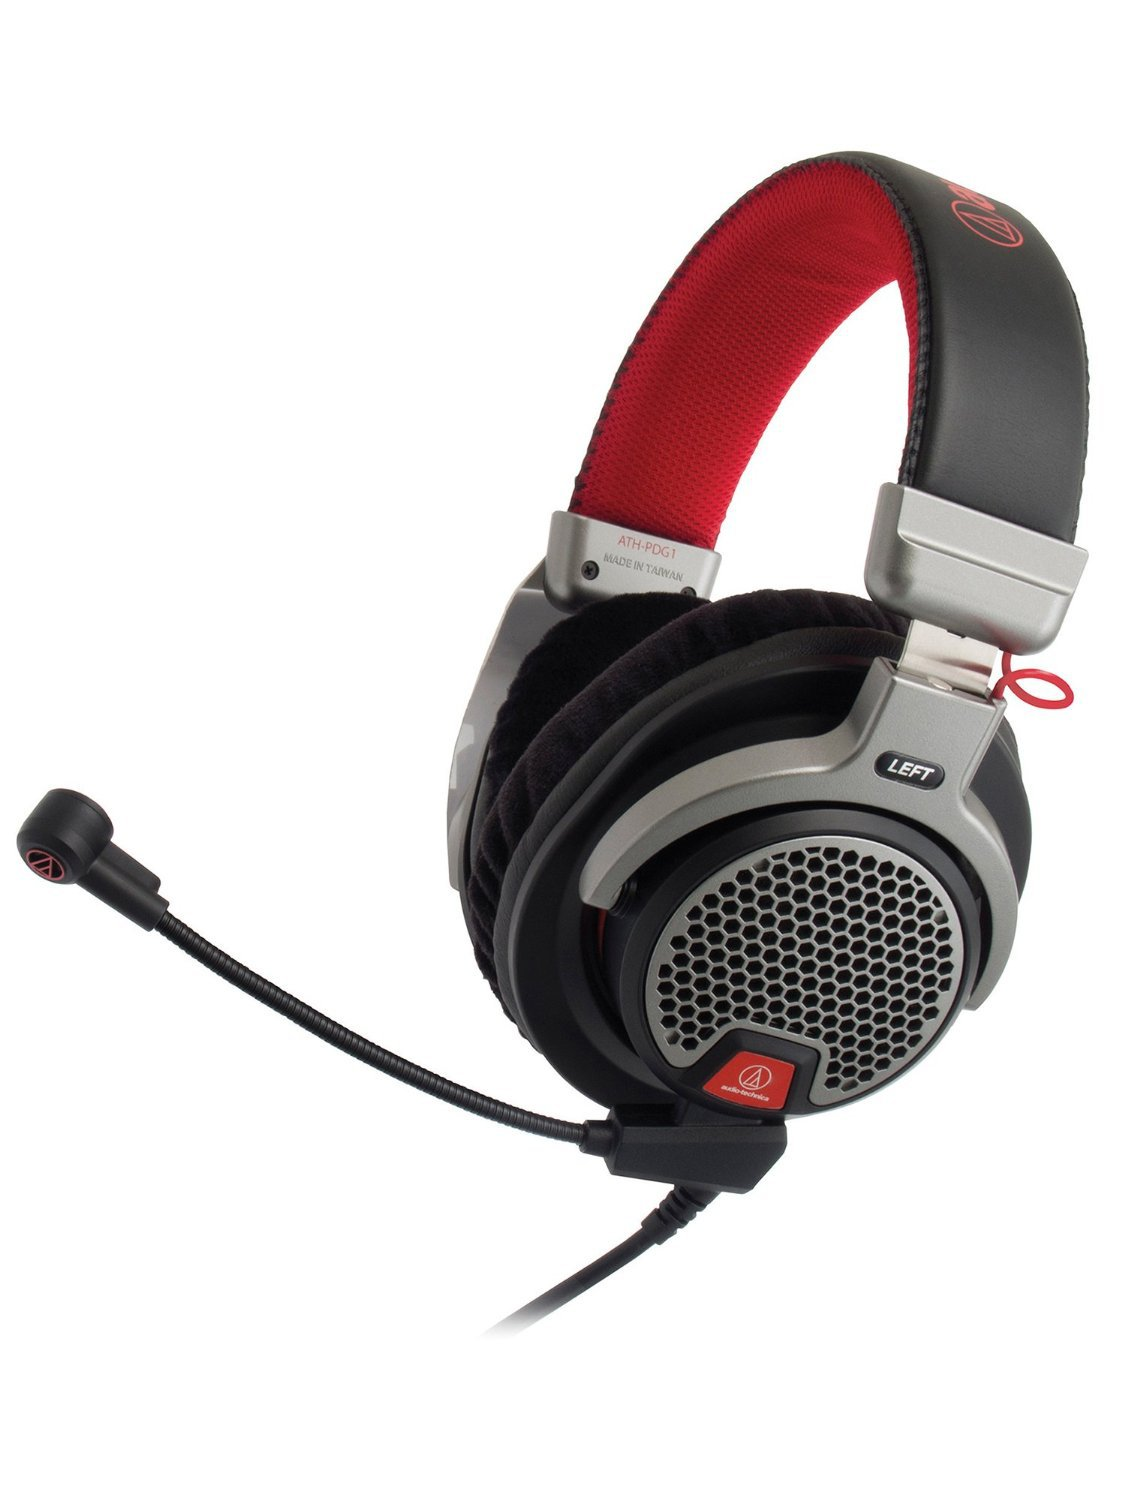 Audio-technica Gaming Headset ATH-PDG1